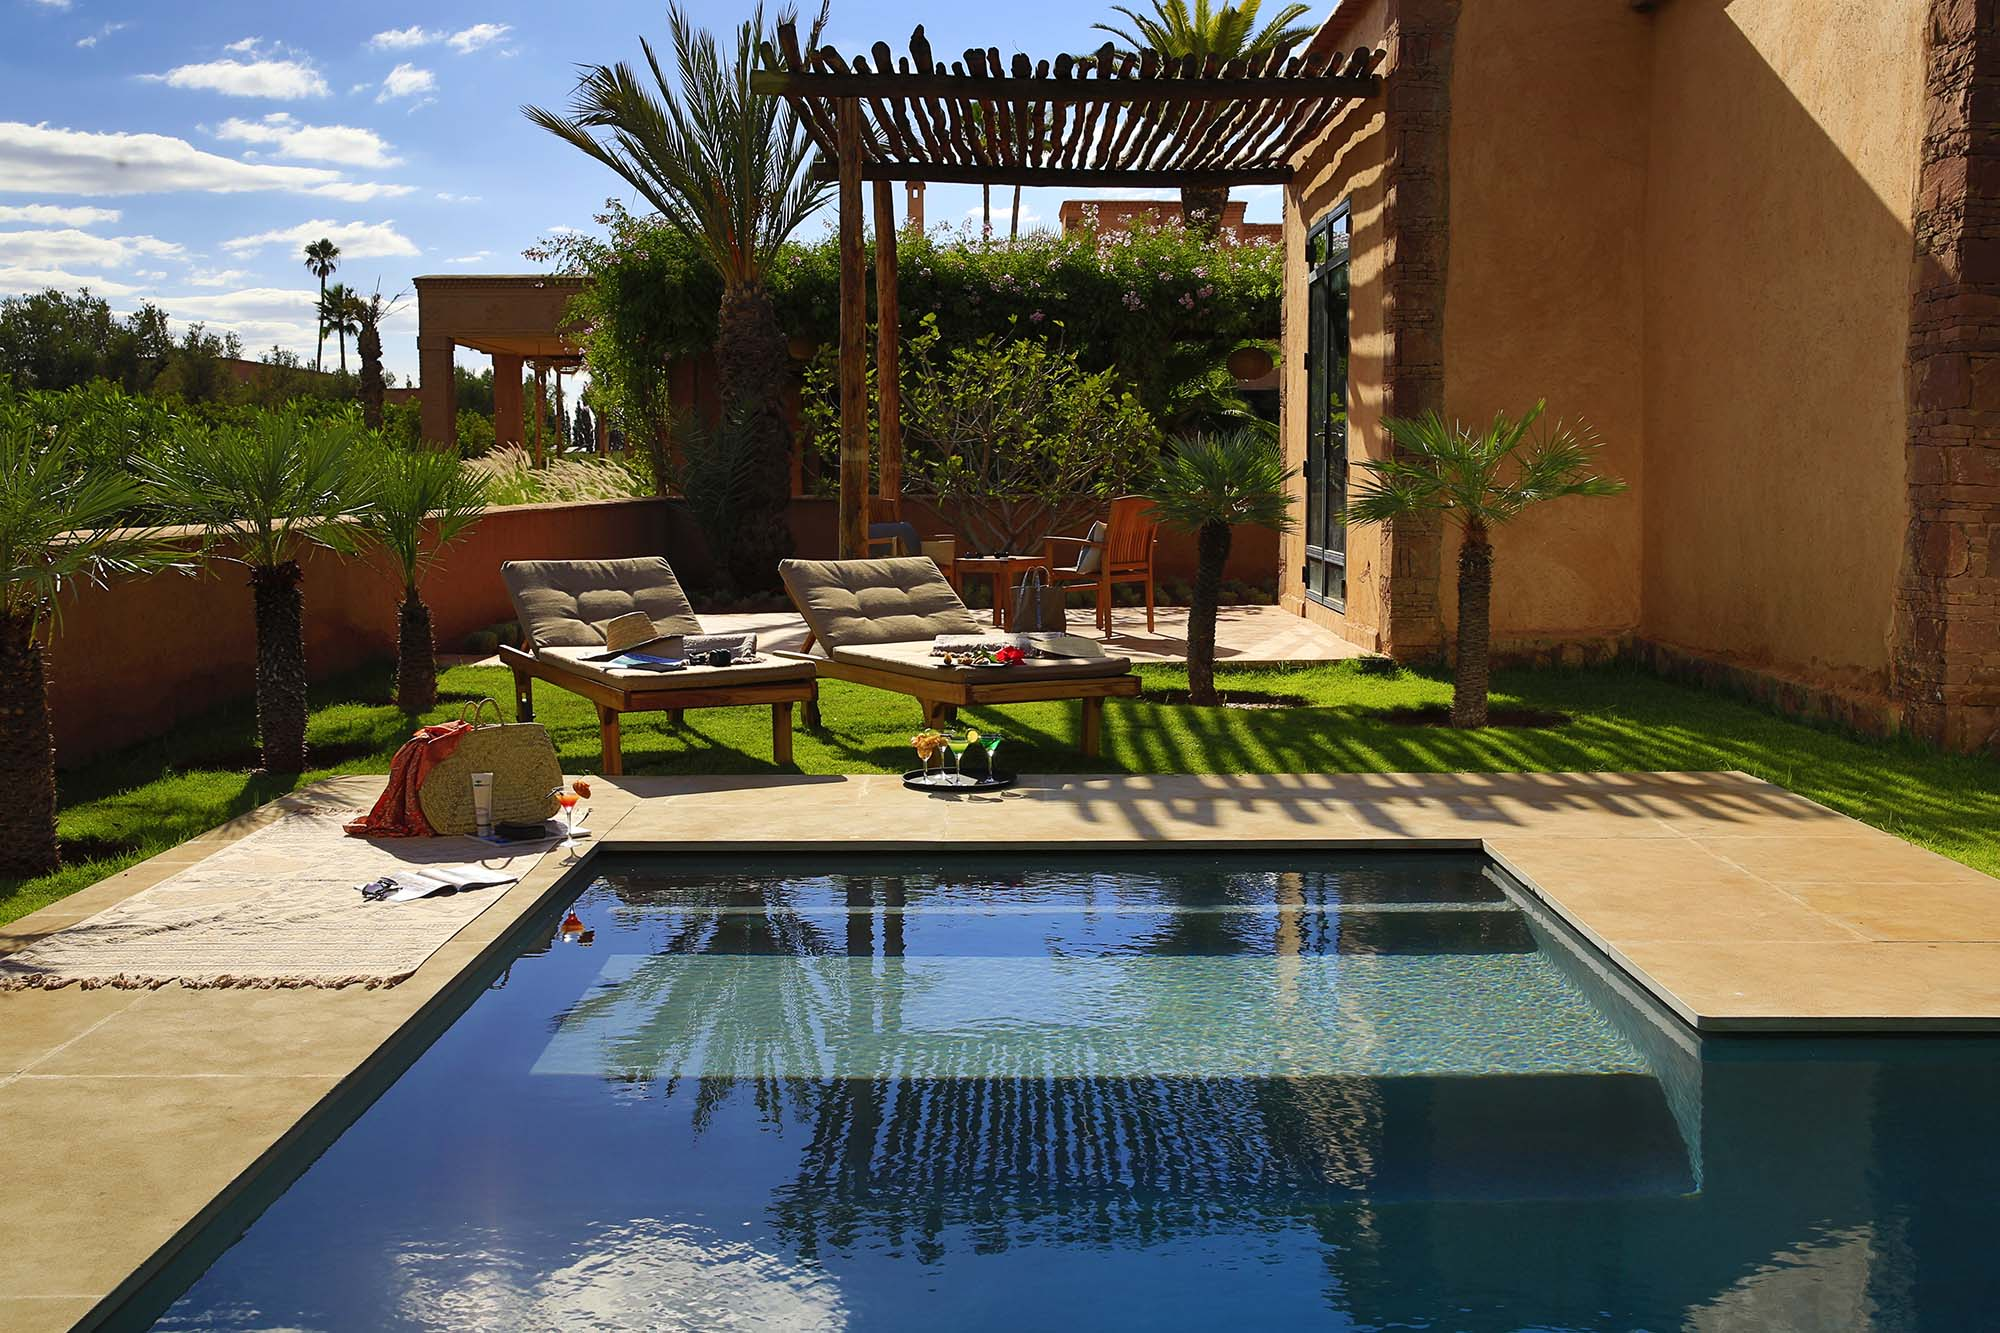 https://www.thesourcemarrakech.com/wp-content/uploads/2017/08/Pool.jpg